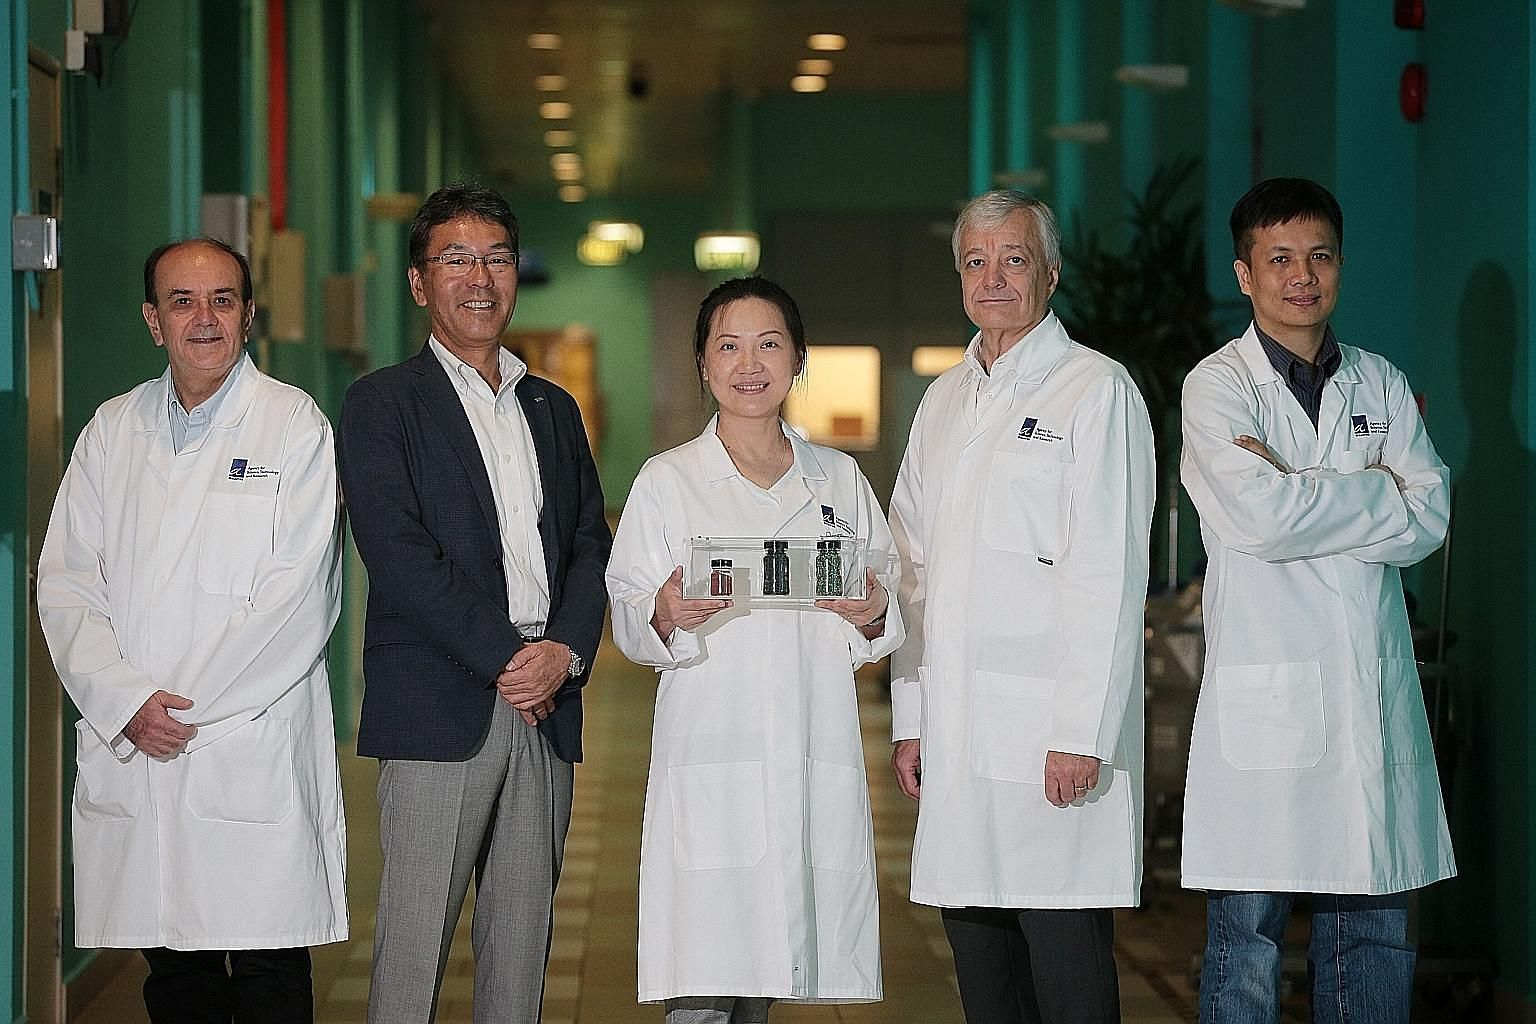 From left: Dr Armando Borgna, principal scientist, Institute of Chemical and Engineering Sciences (ICES); Mr Tomoyuki Kuwata, CEO of IHI Asia Pacific; Dr Chen Luwei, ICES senior scientist; Dr Peter Nagler, ICES executive director; and Dr Poh Chee Kok